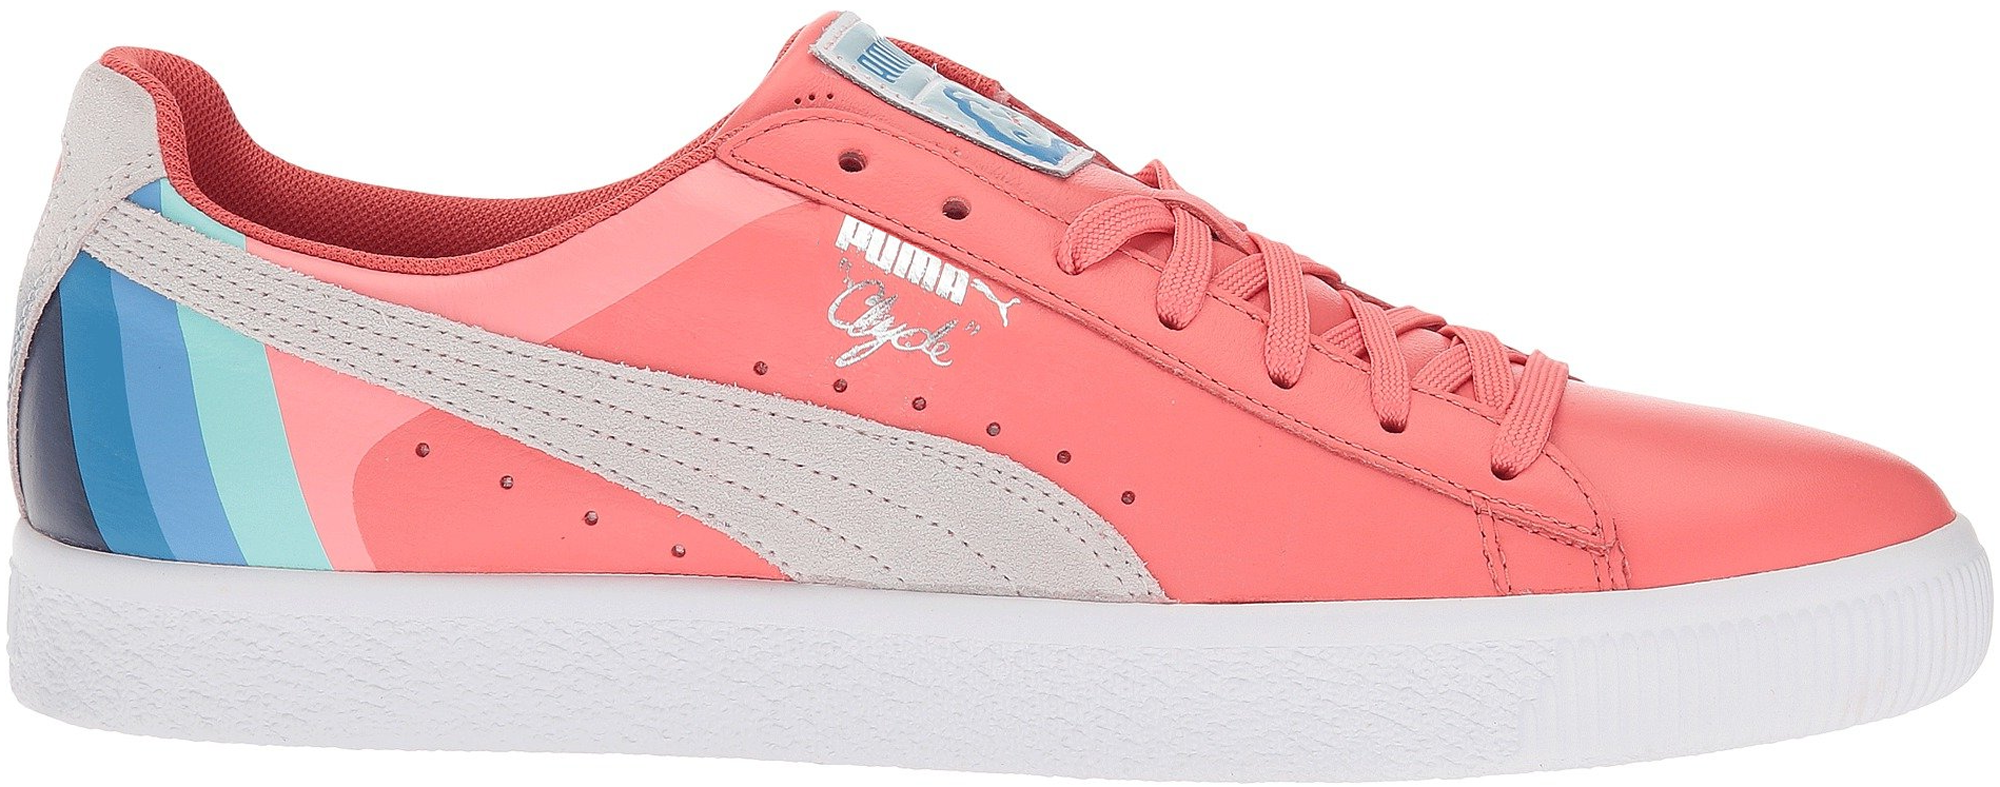 Puma Clyde Pink Dolphin Porcelain Rose